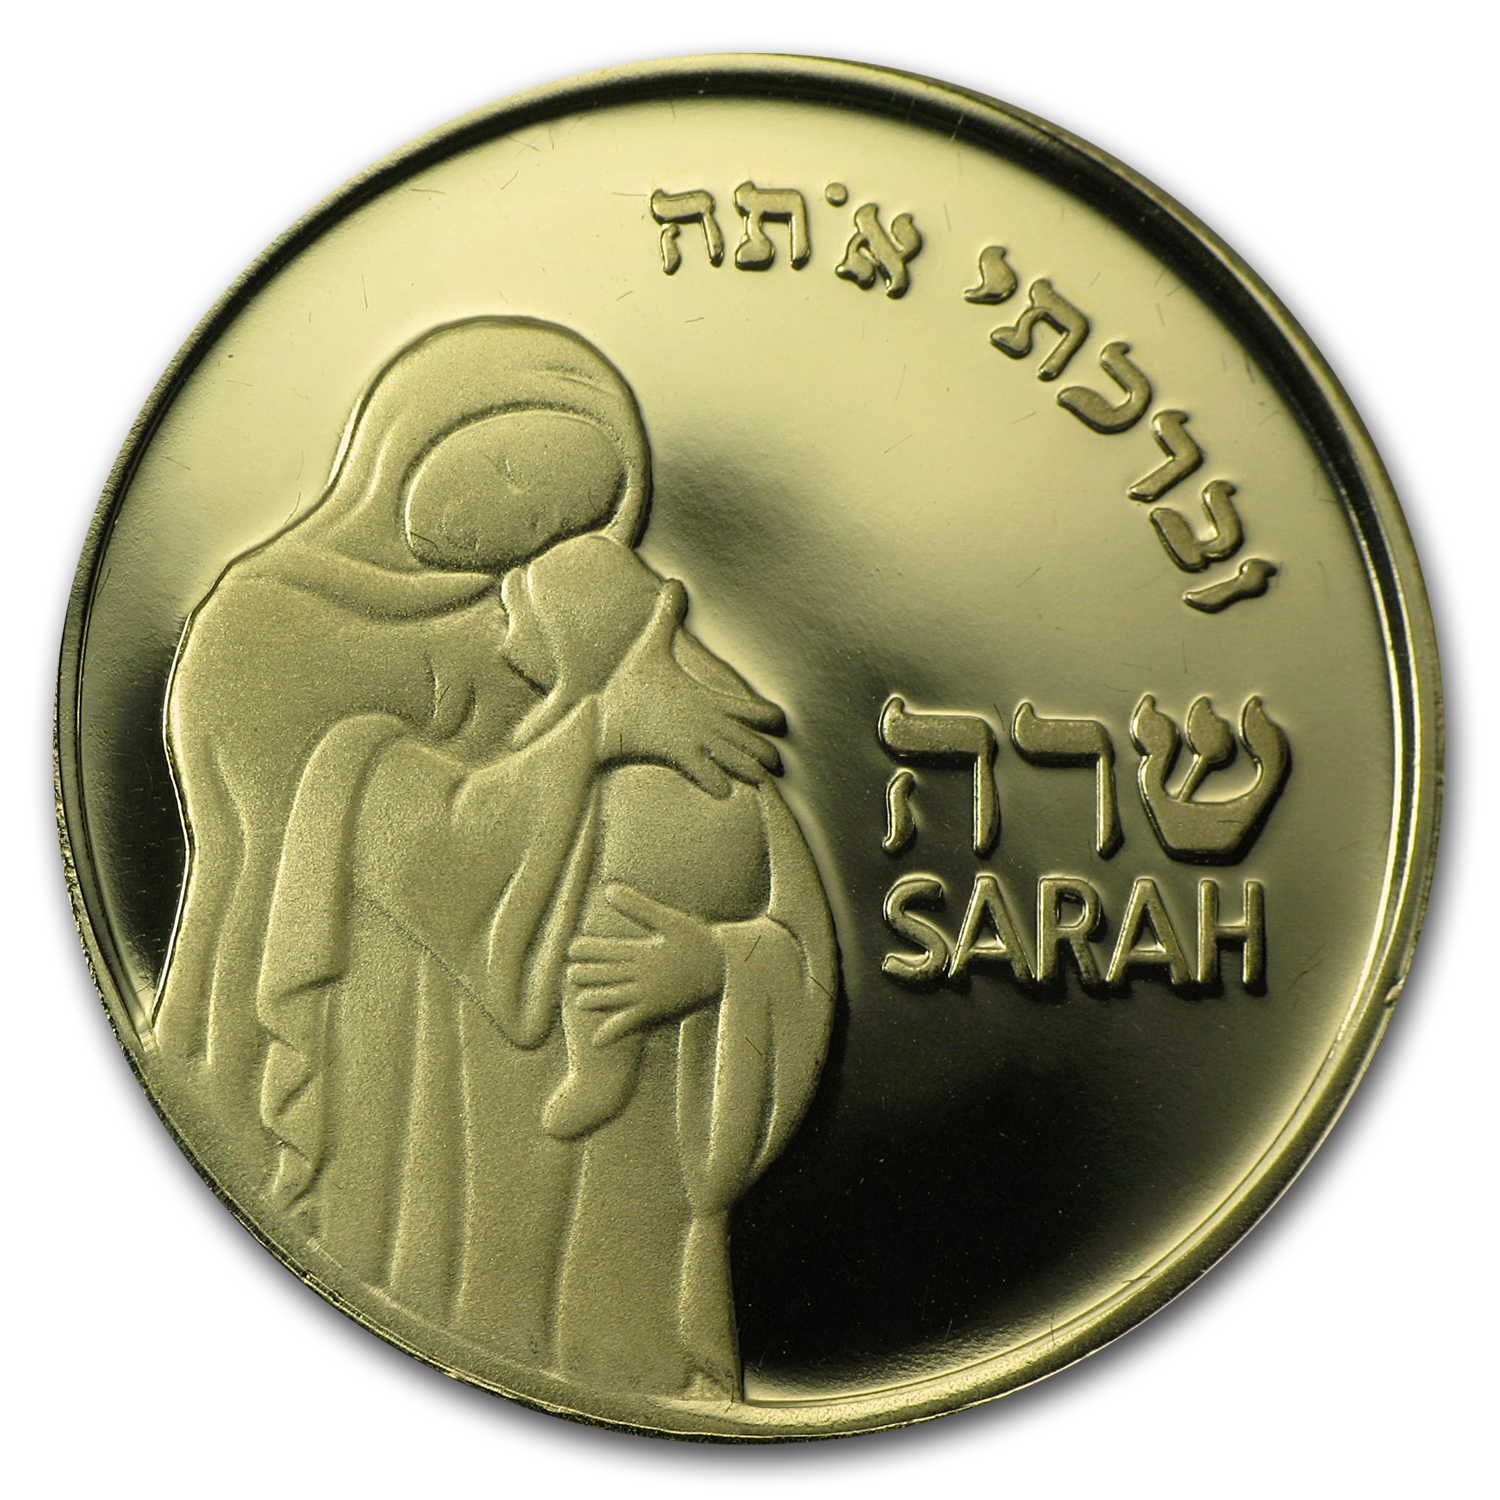 2007 Israel Proof Gold Medal Sarah (AGW .32 oz)